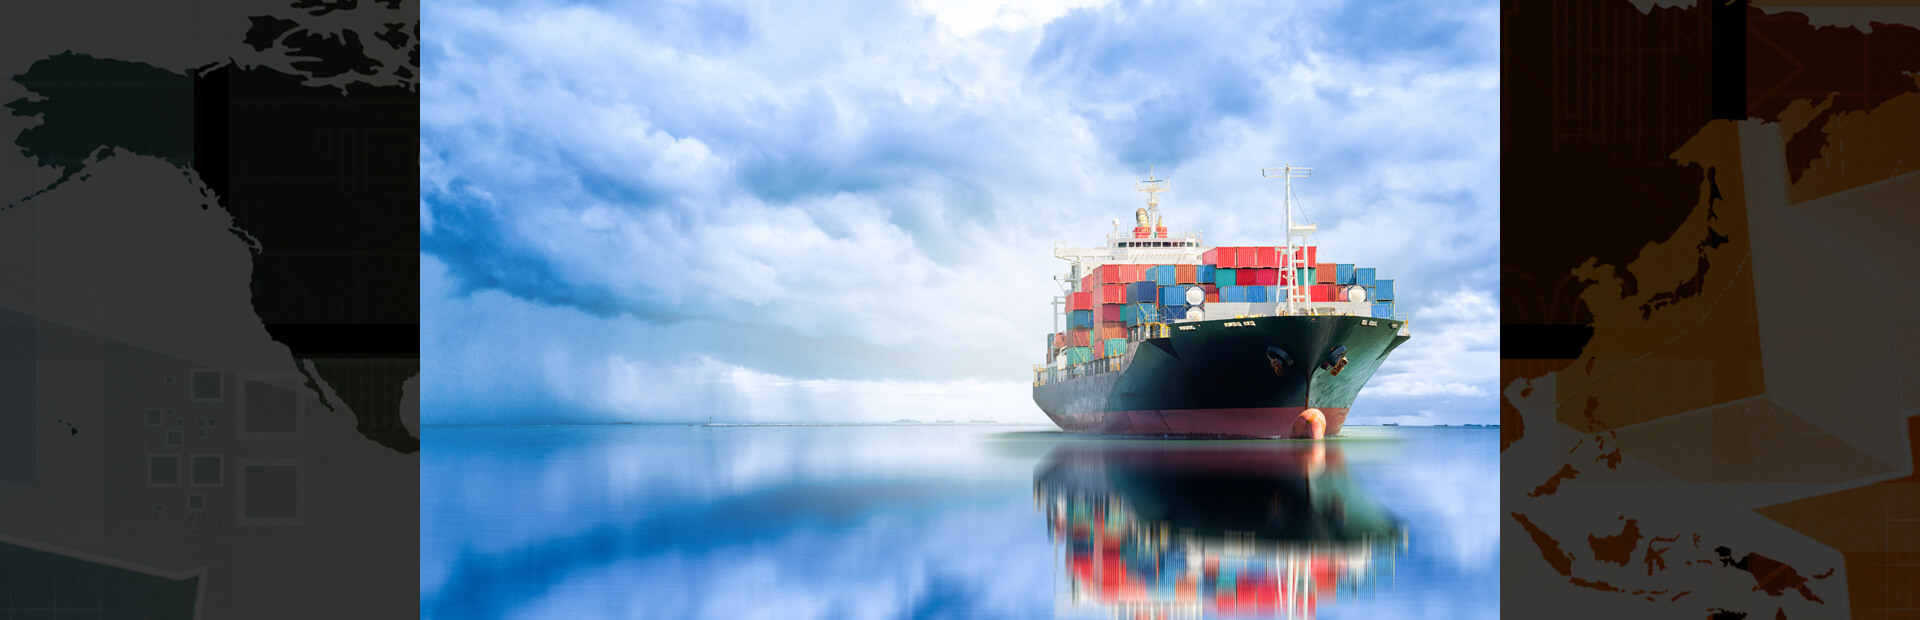 Customs - Ocean Freight